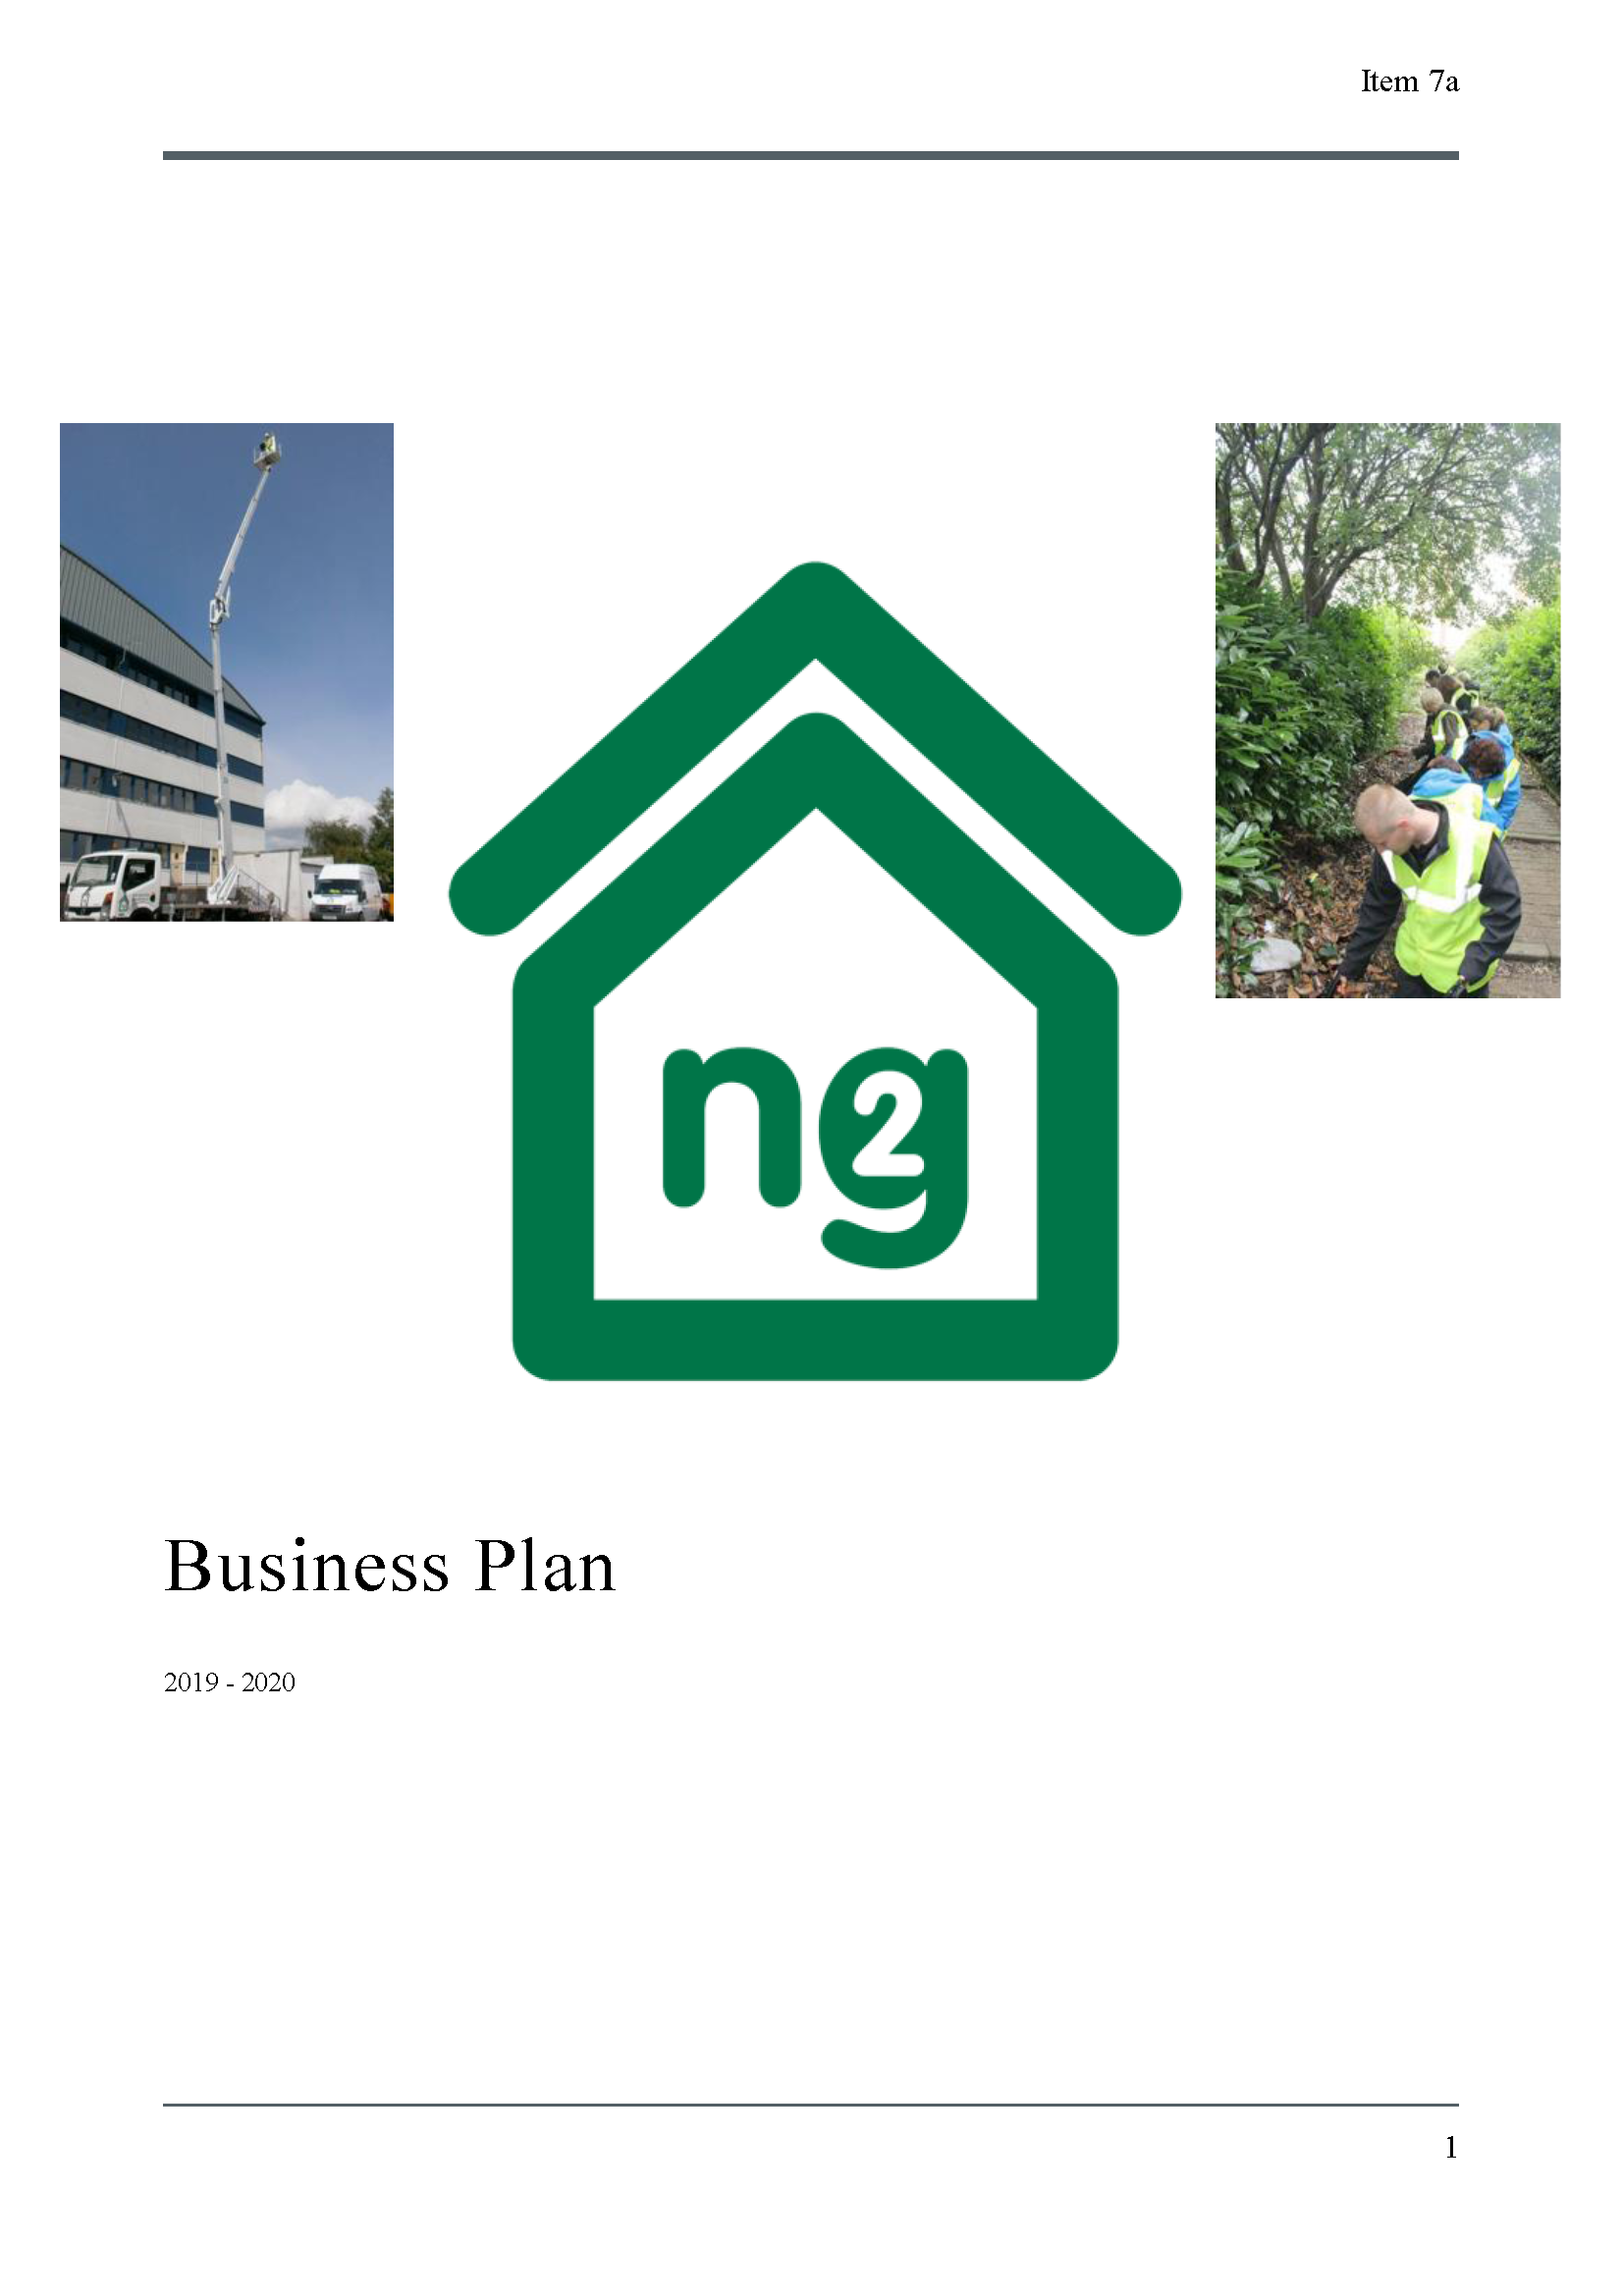 Ng2 Business Plan 2019 Cover